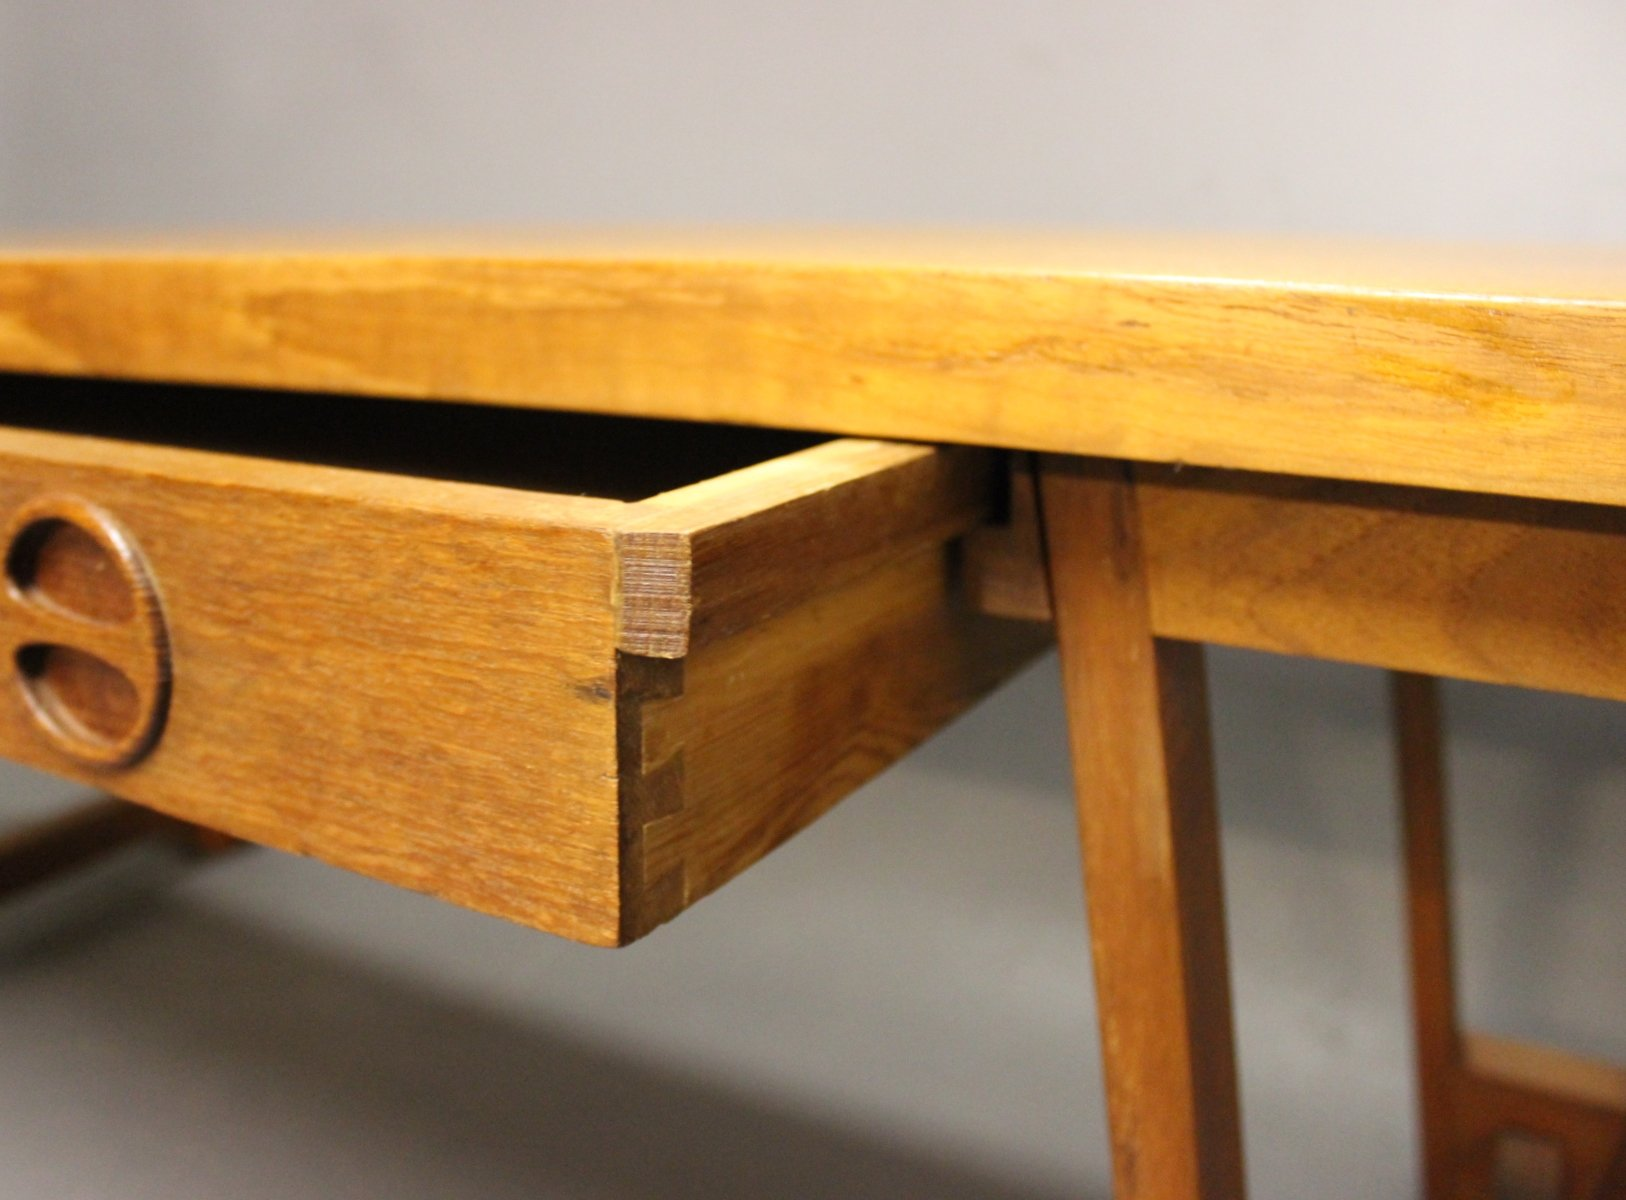 Teak Coffee Table by Illum Wikkels¸ 1960s for sale at Pamono